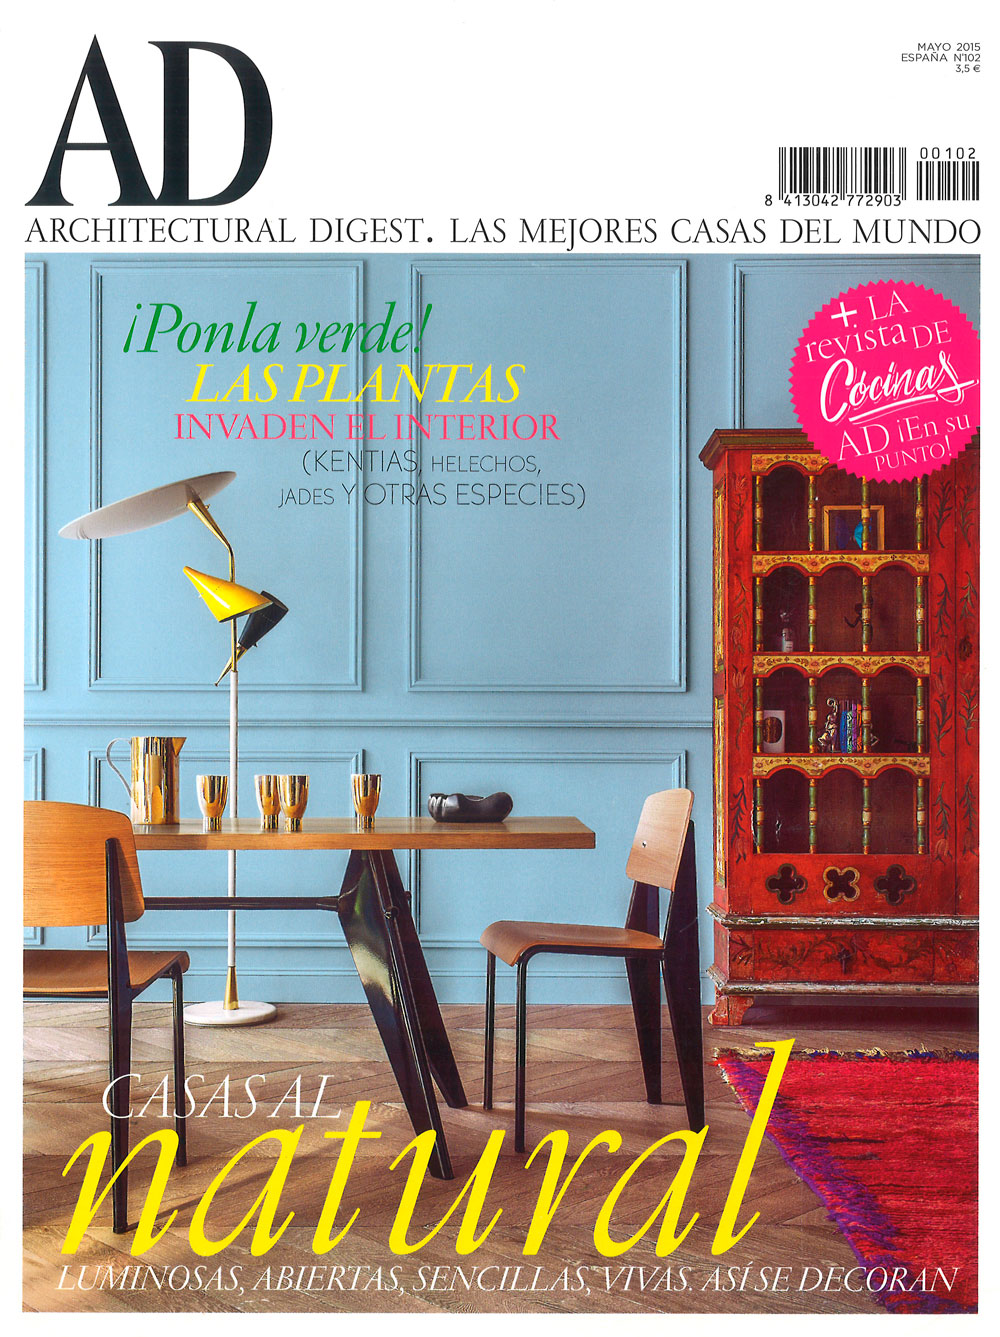 ARCHITECTURAL DIGEST, AD Spain MAGAZINE, Issue 102, May 2015.